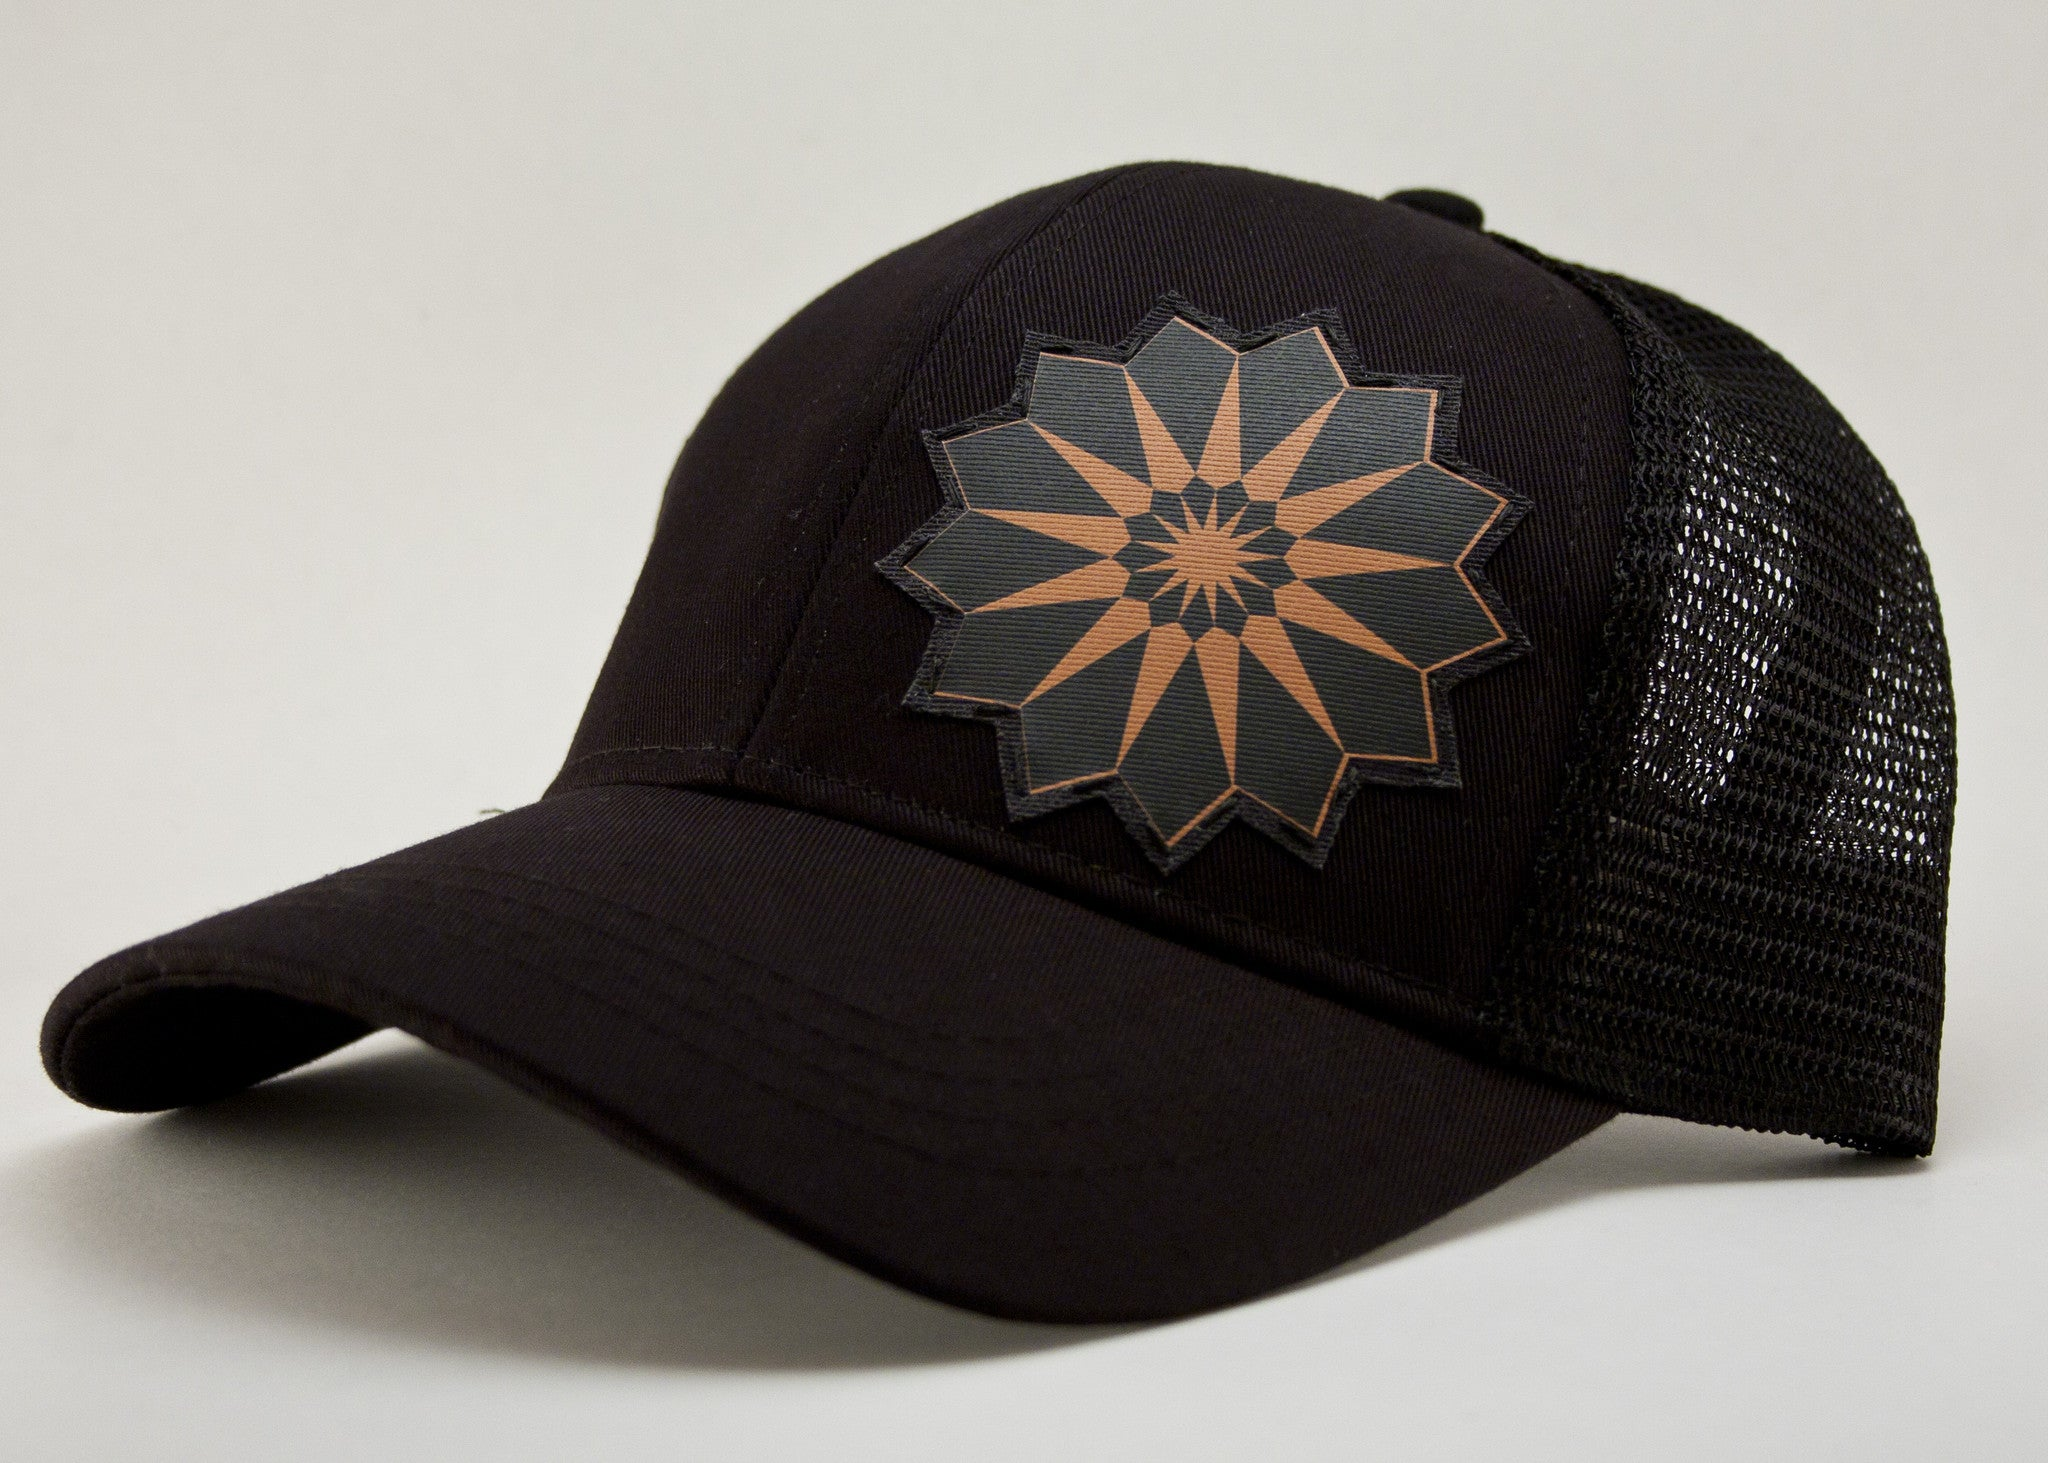 Causes: Sacral Chakra - Hat